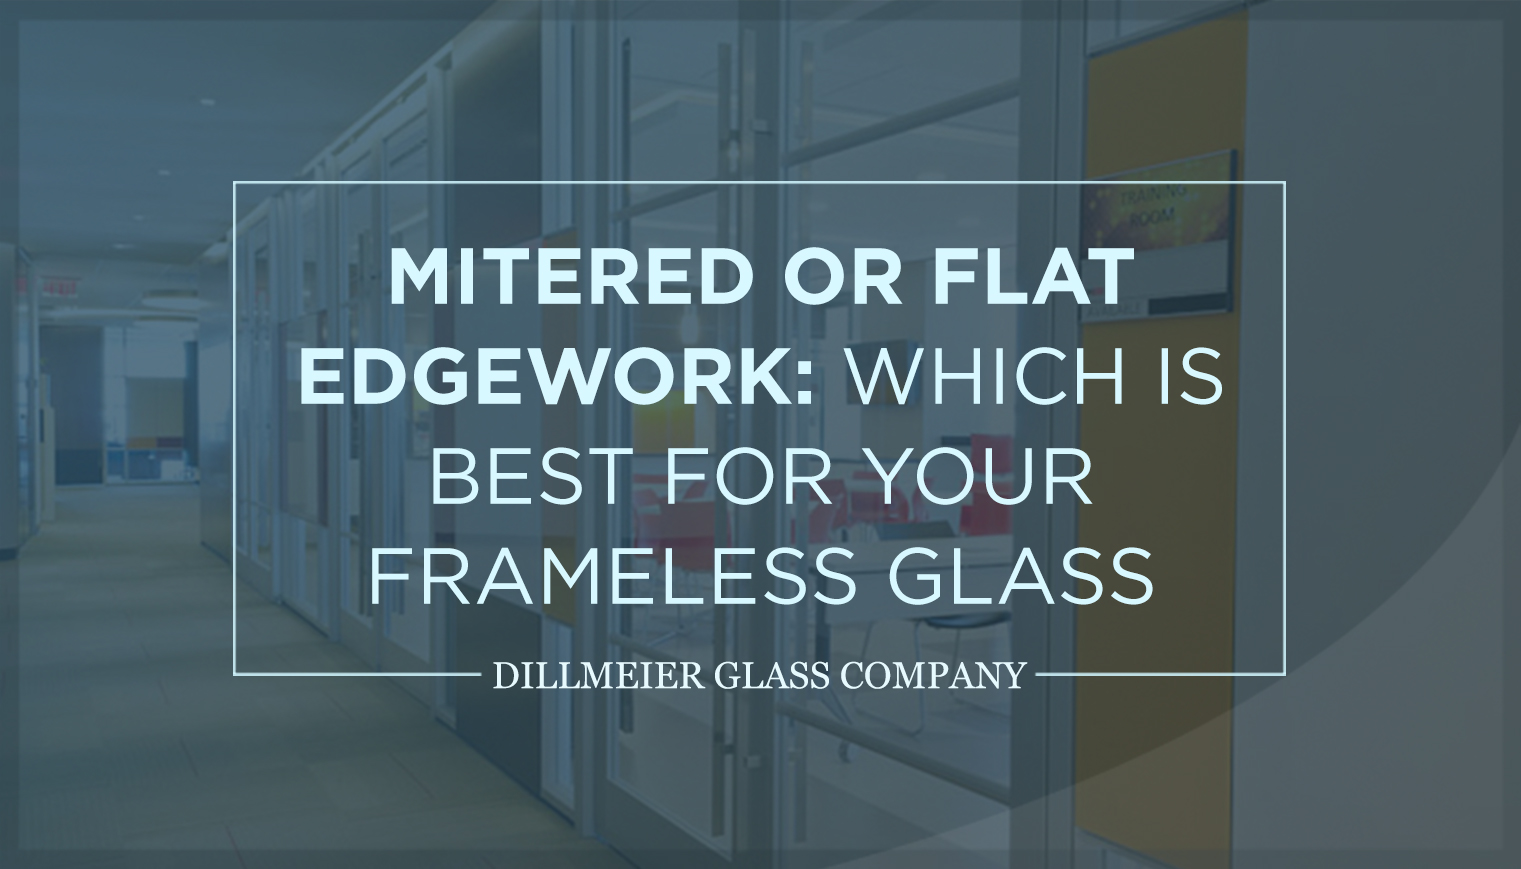 Mitered or Flat Edgework: Which Is Best for Your Frameless Glass Case?